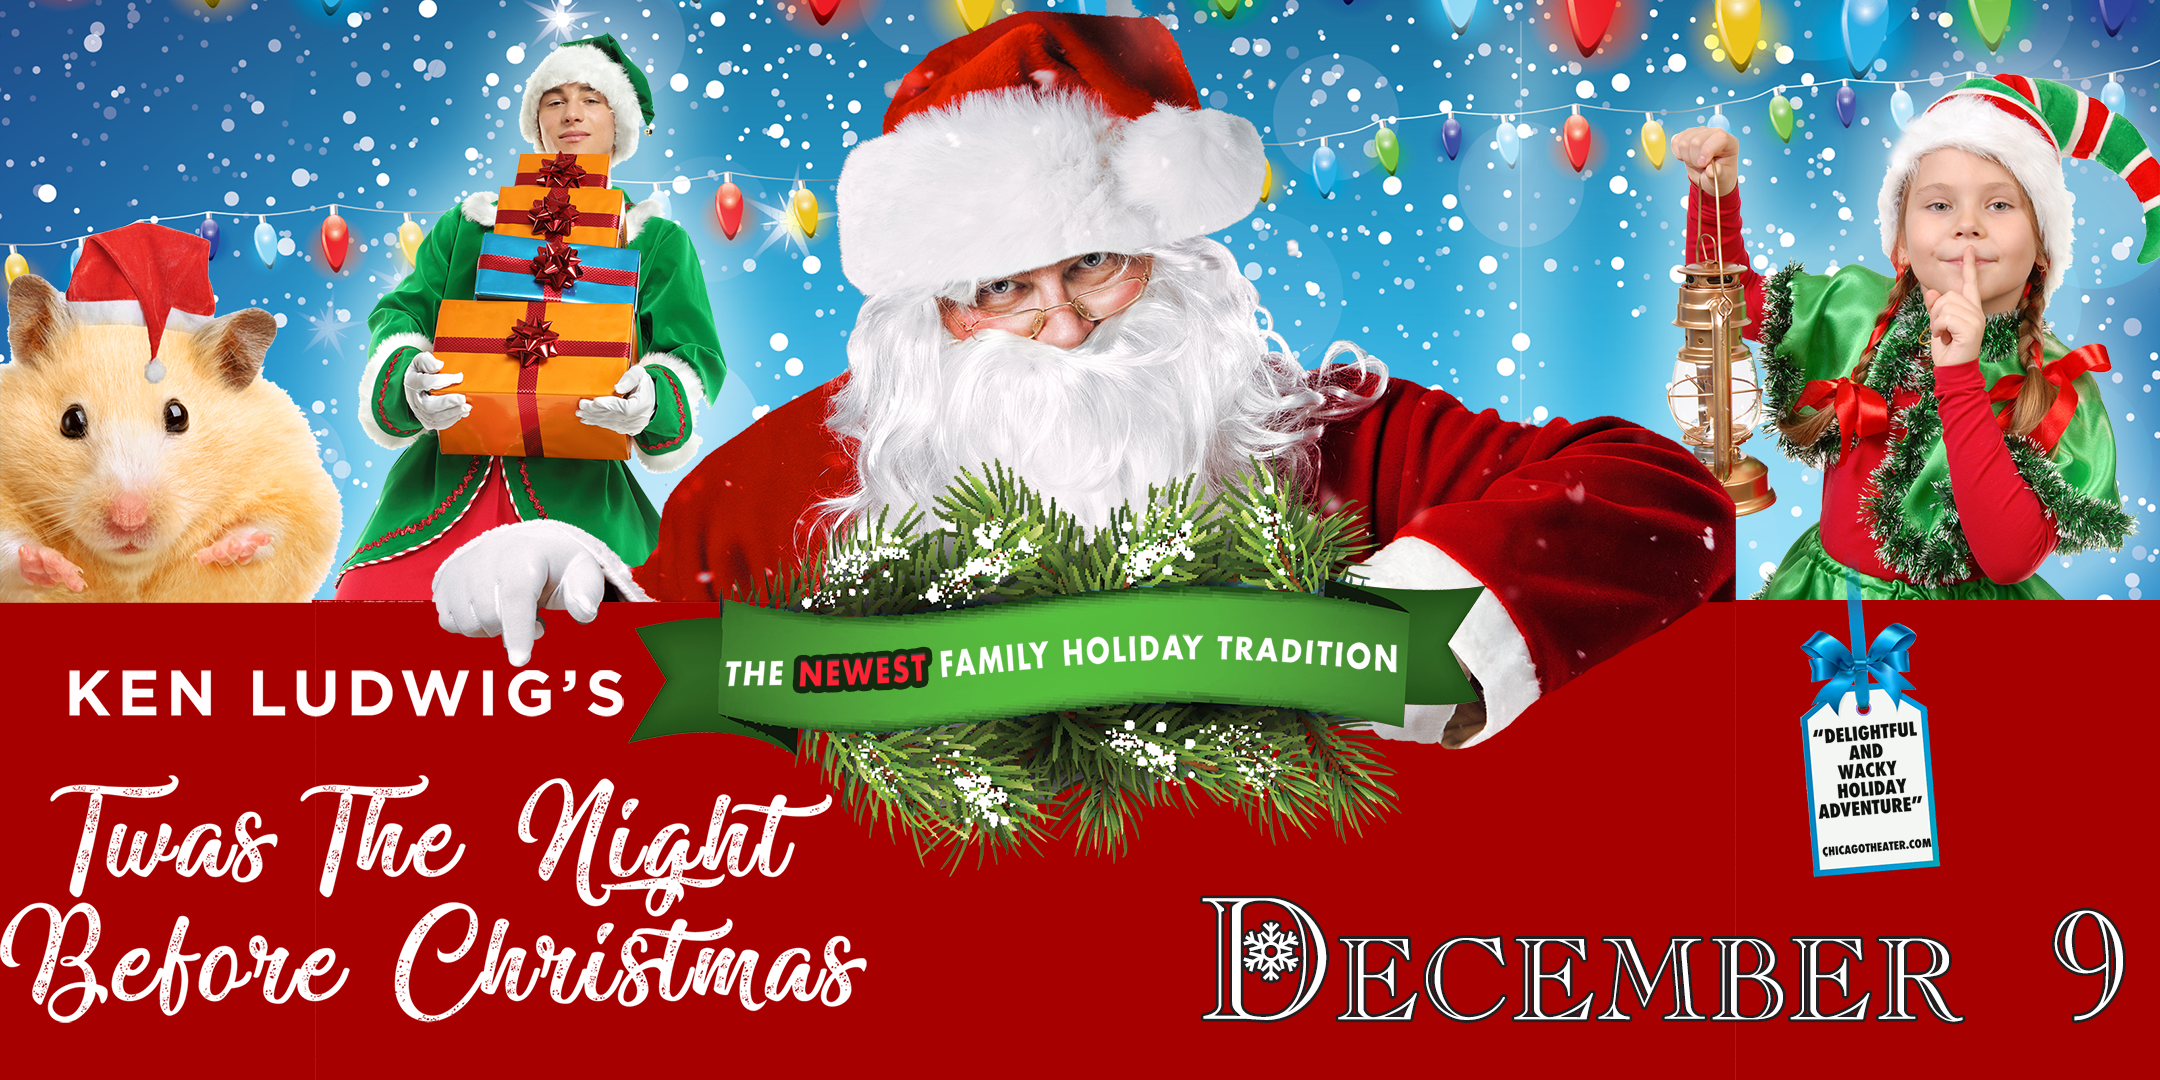 Twas the Night Before Christmas - December 9